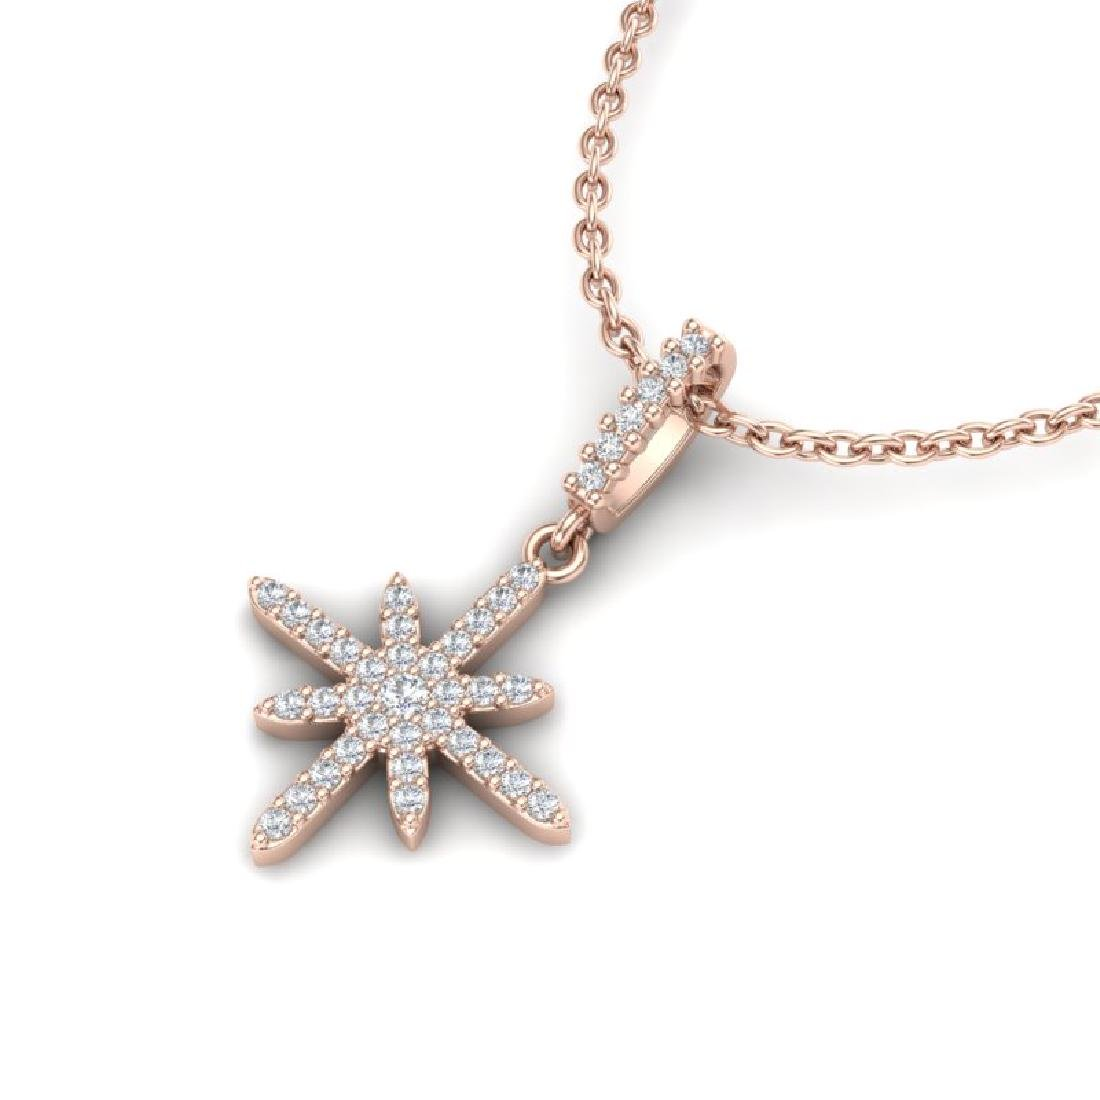 0.38 CTW Micro Pave VS/SI Diamond Necklace 14K Rose - 2